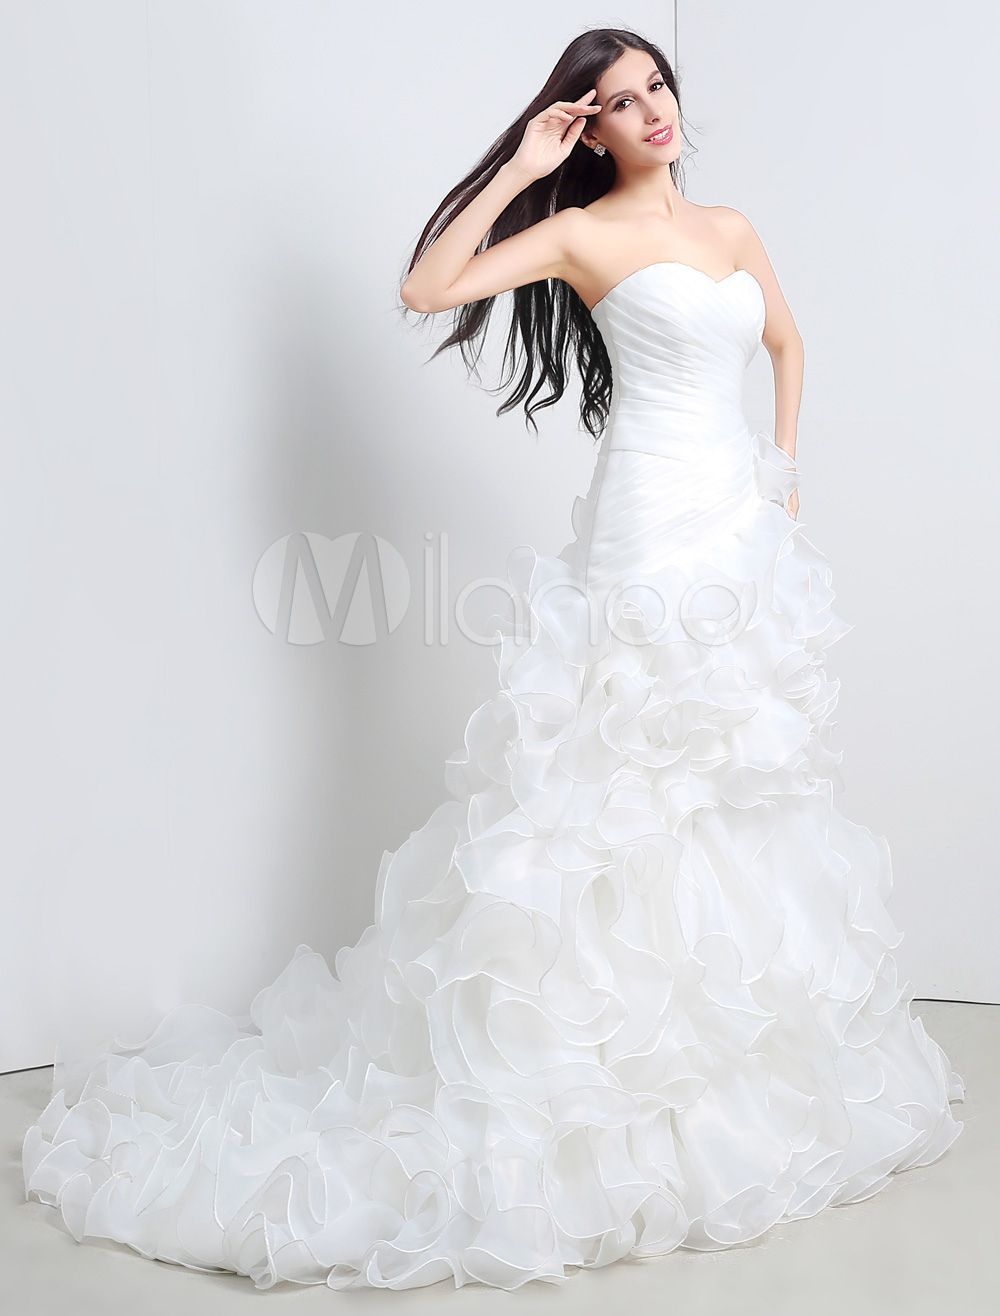 Ball Gown Strapless Sweatheart Ruffled A-Line Wedding Gown With Chapel Train-No.4